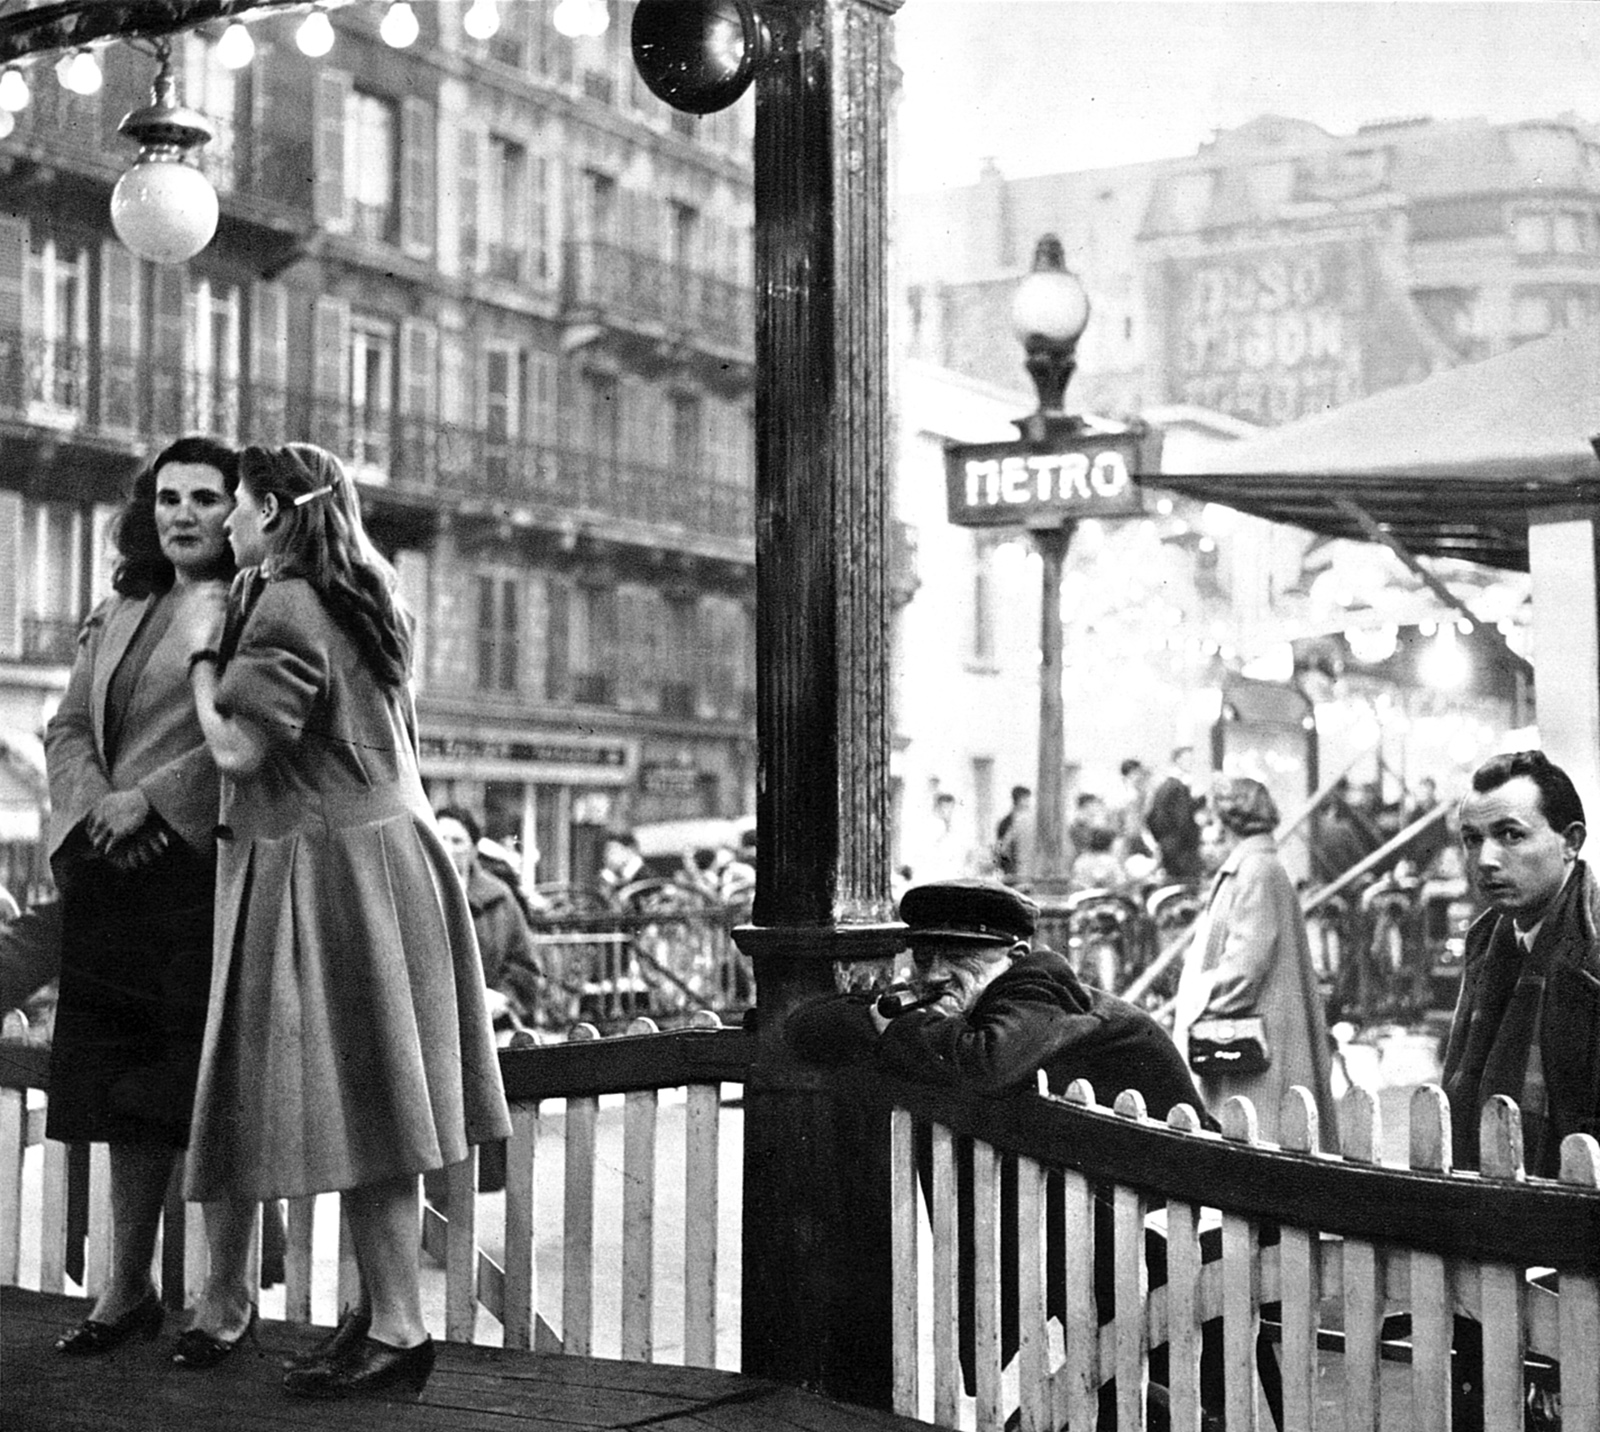 One of the dozens of photographs of Paris taken by Patrice Molinard for the 1954 edition of Paris Vagabond